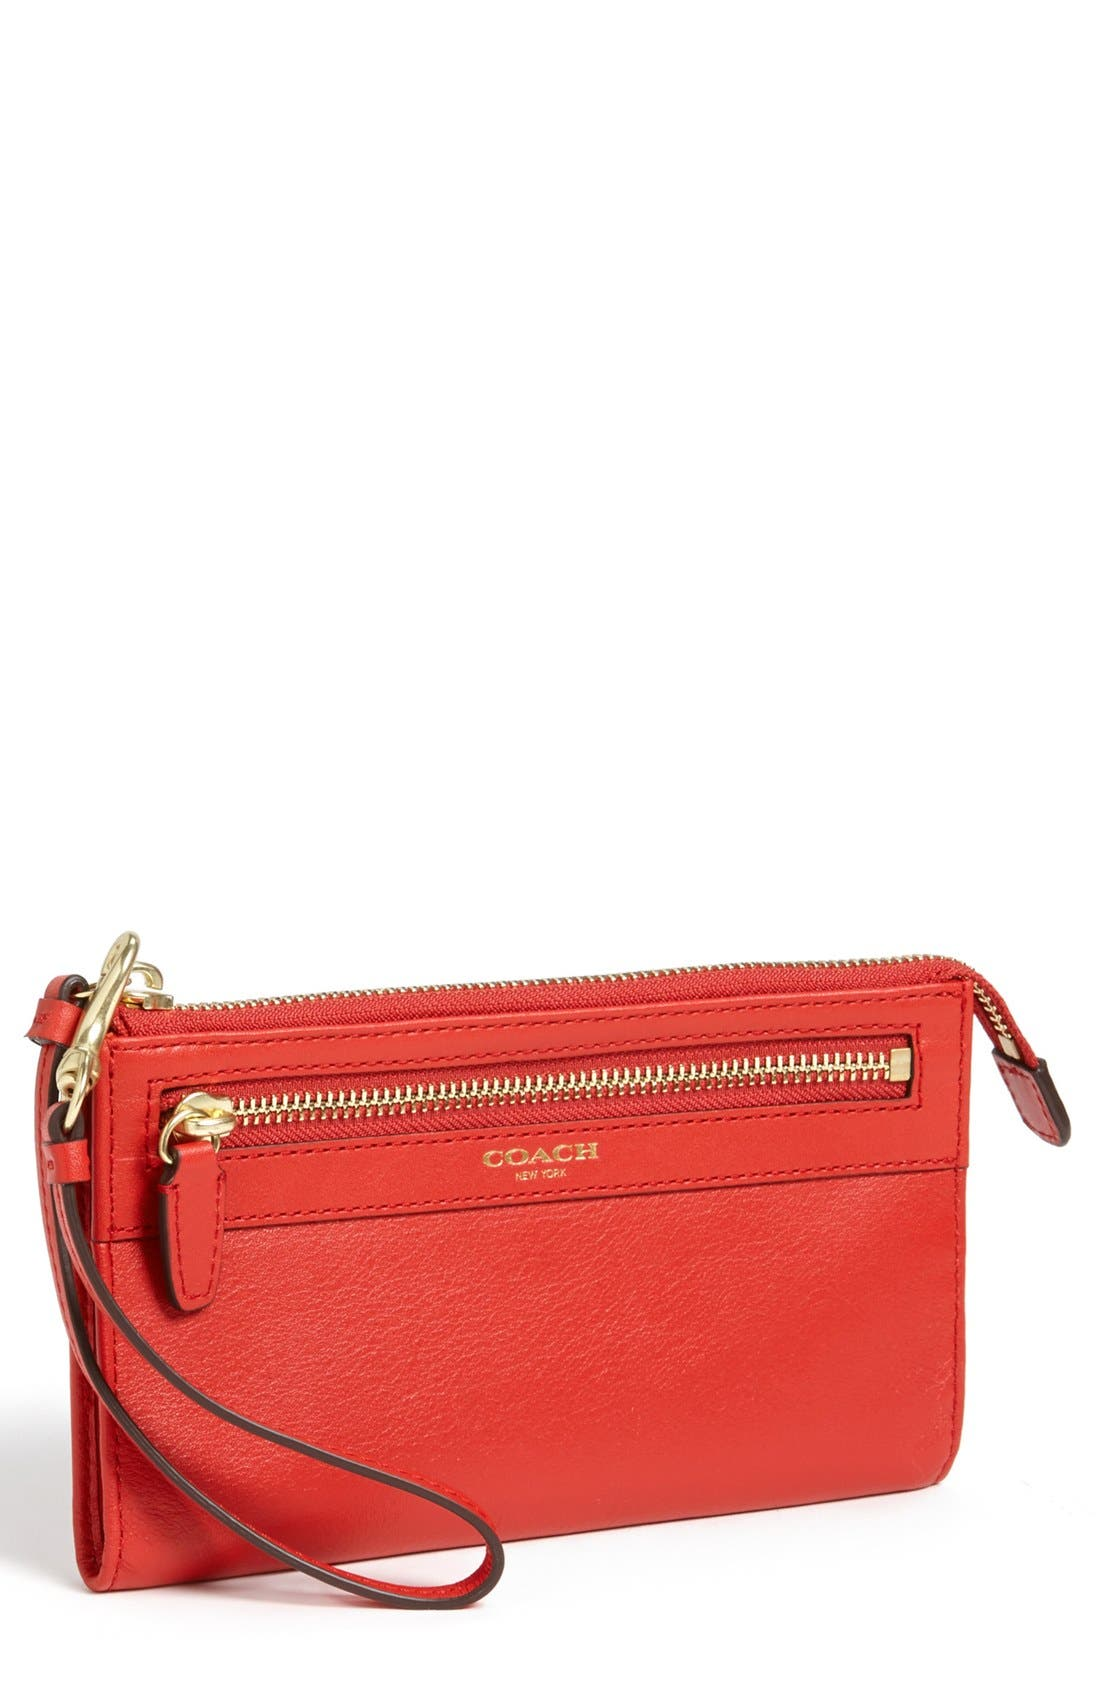 Alternate Image 1 Selected - COACH 'Legacy - Zippy' Leather Wallet